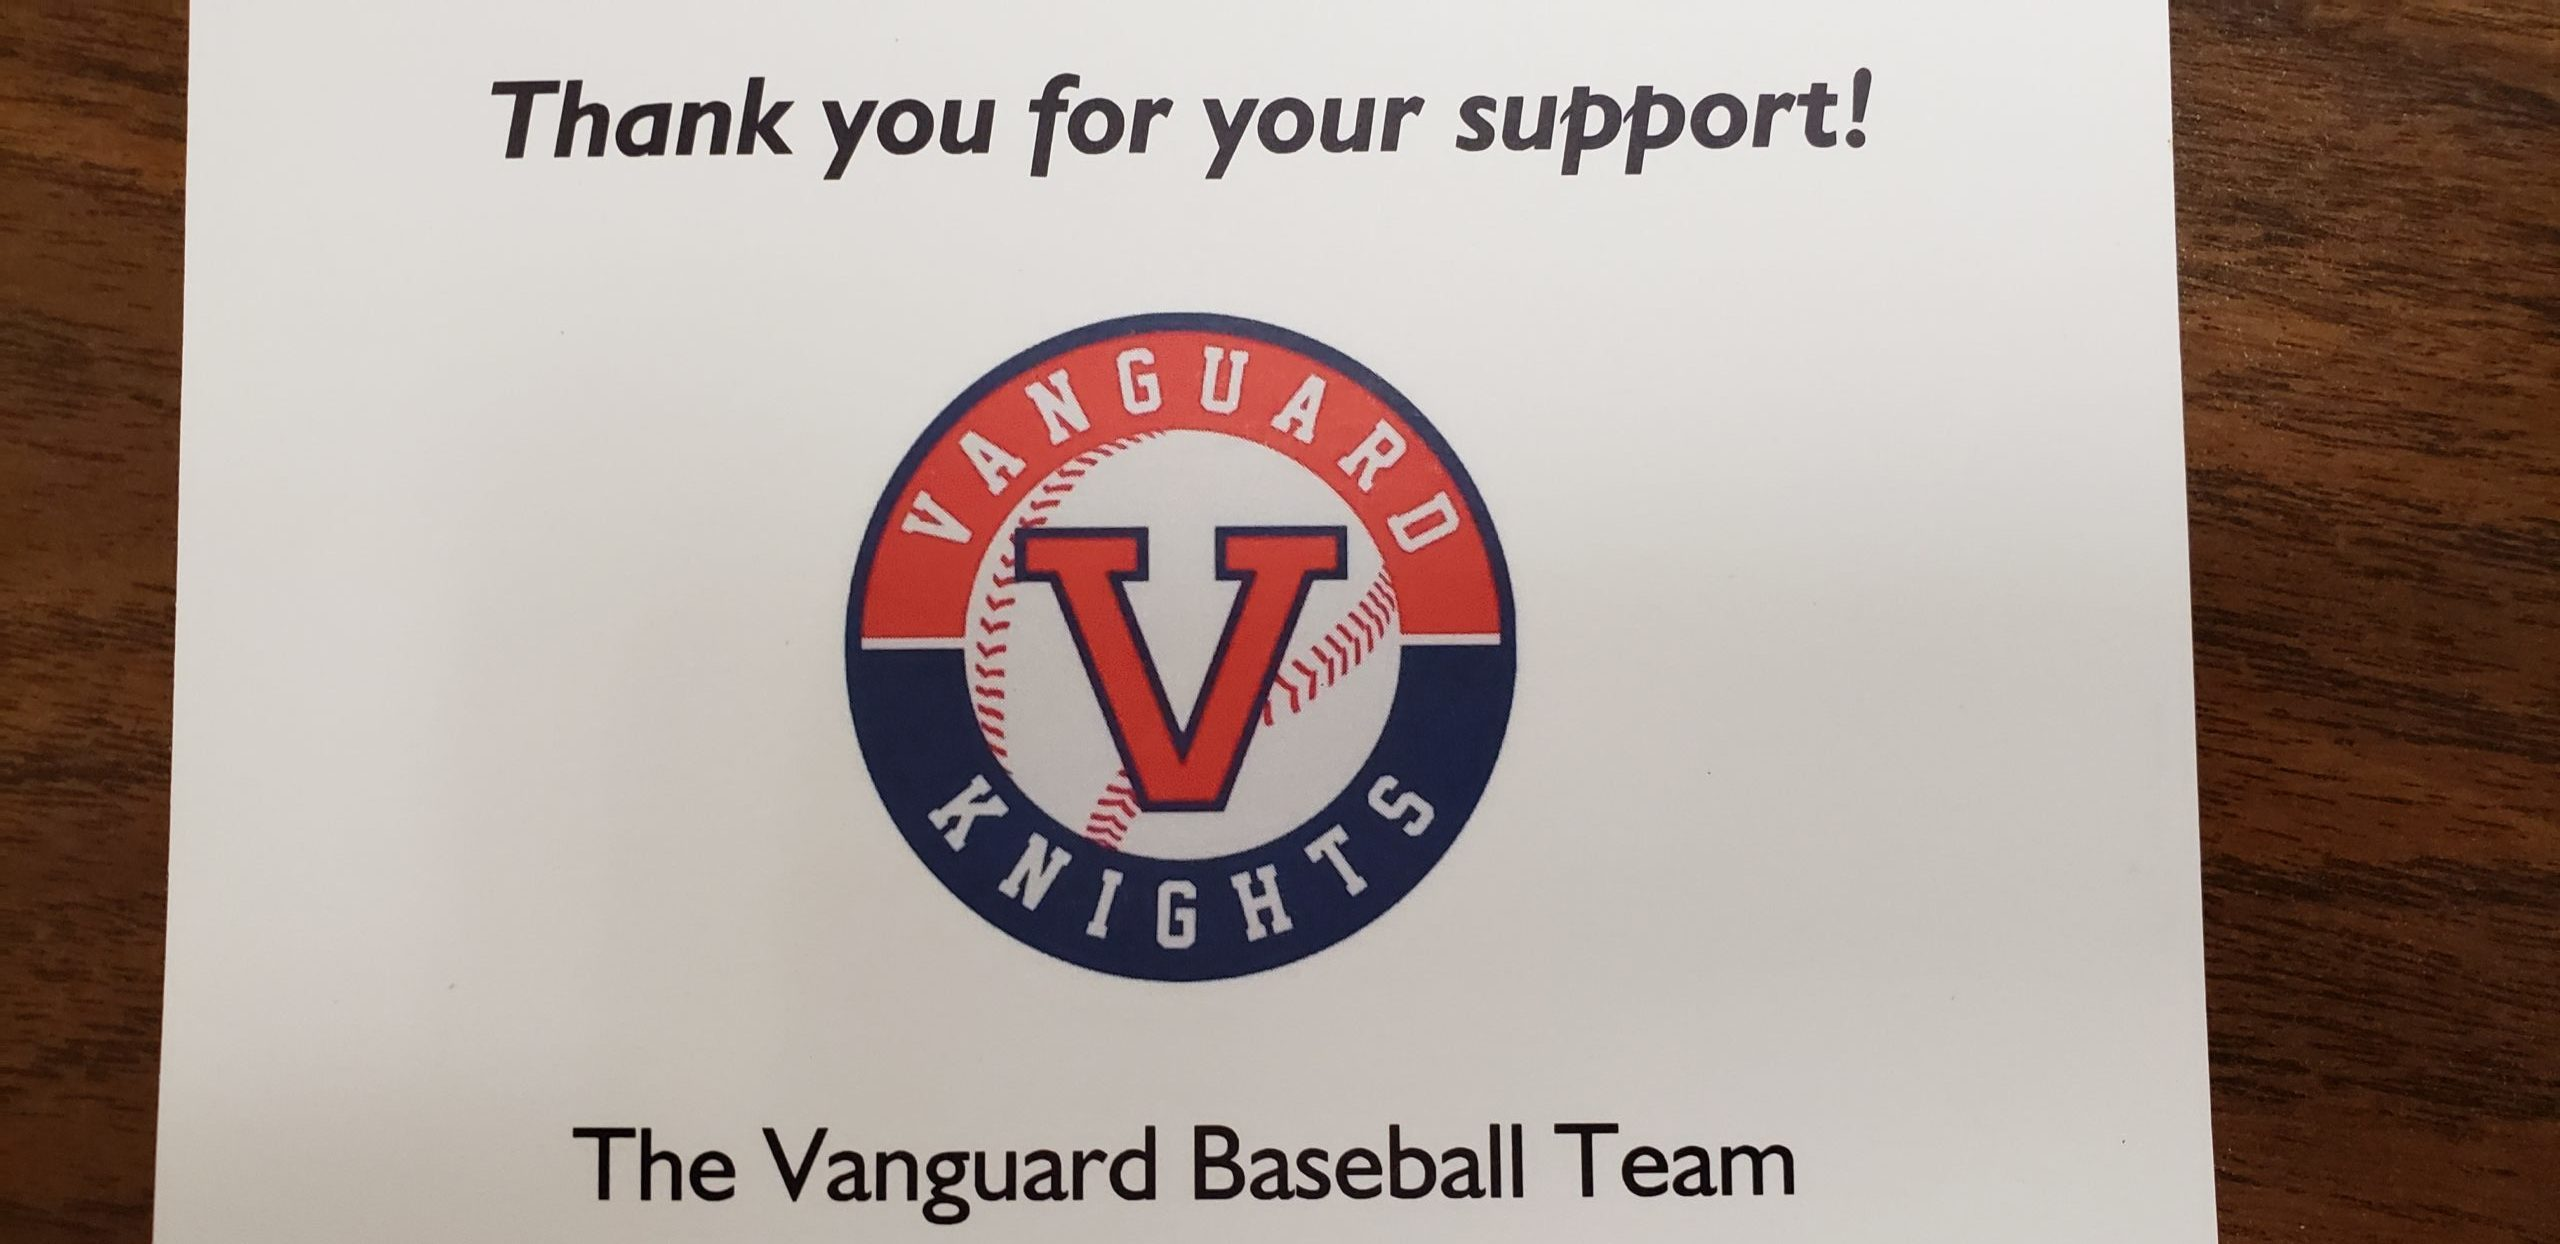 Vanguard Baseball - Thank you!